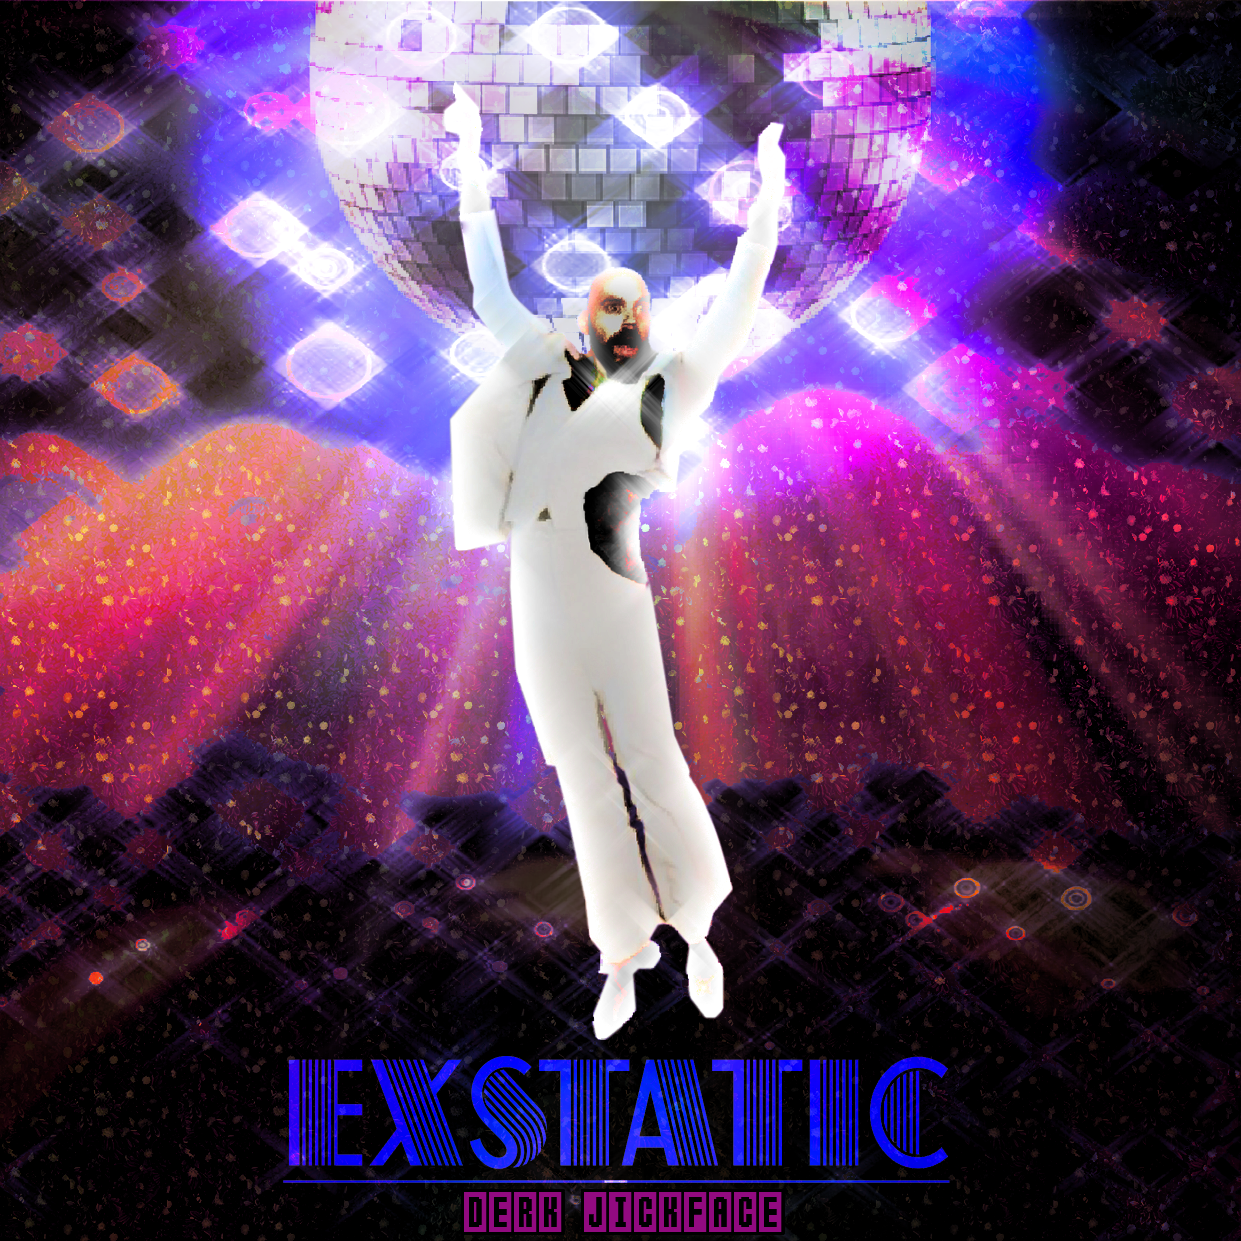 Album Cover design - Exstatic